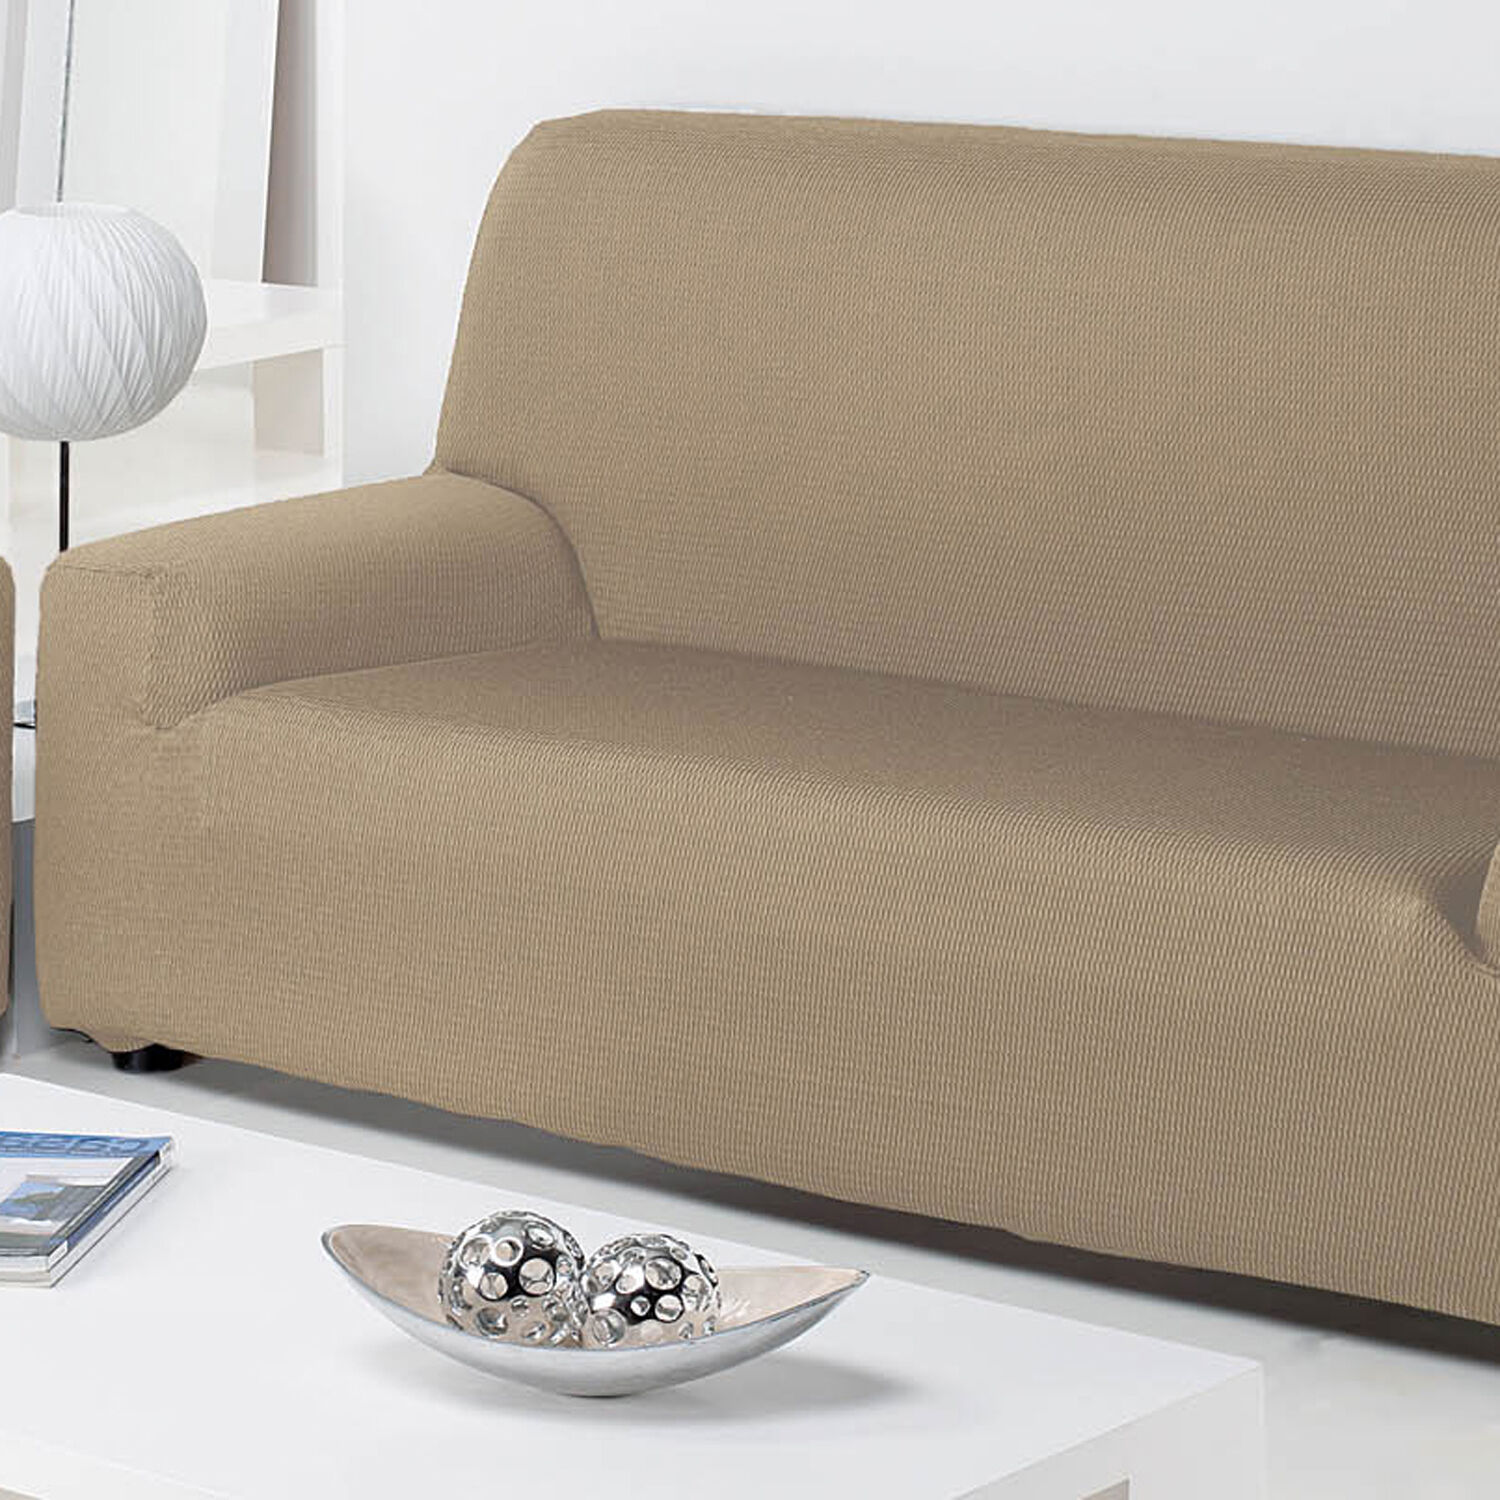 guineys dining chair covers acrylic side sofa home store more easystretch 2 seater cover linen